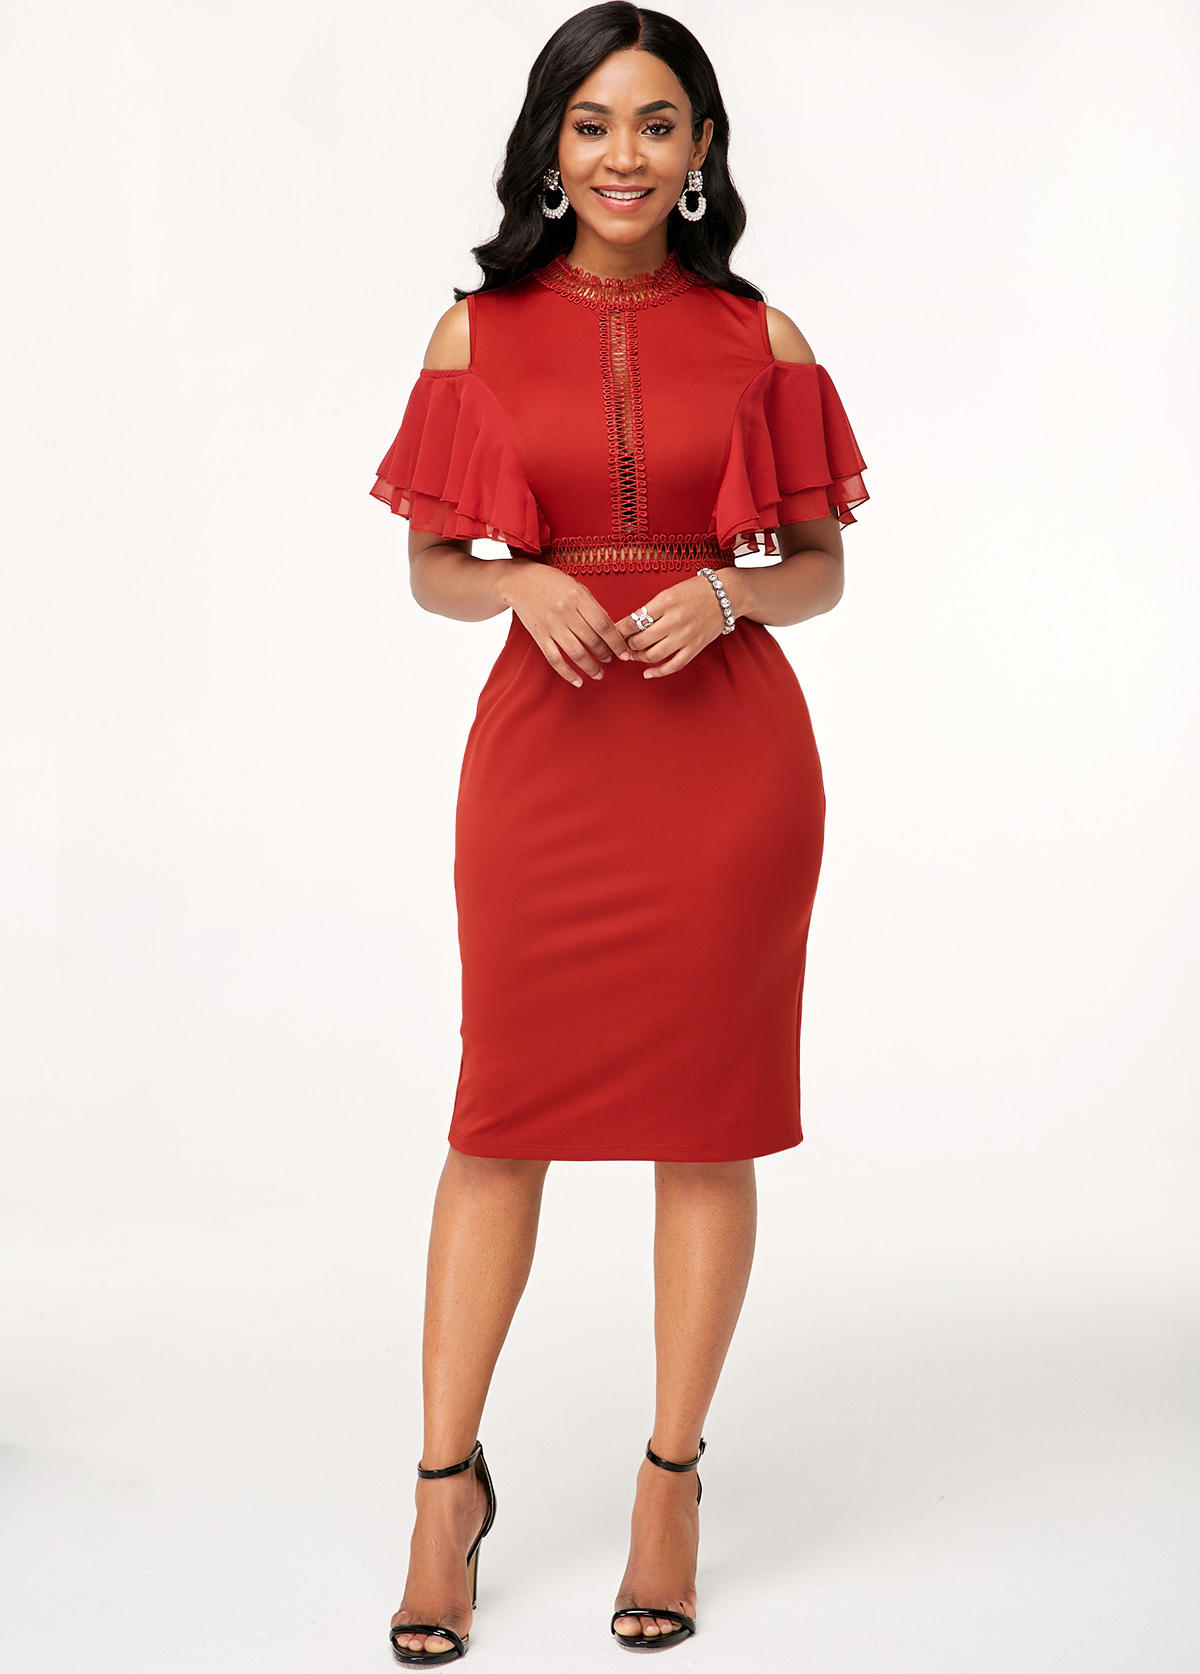 Ruffle Decorated Wine Red Cold Shoulder Dress